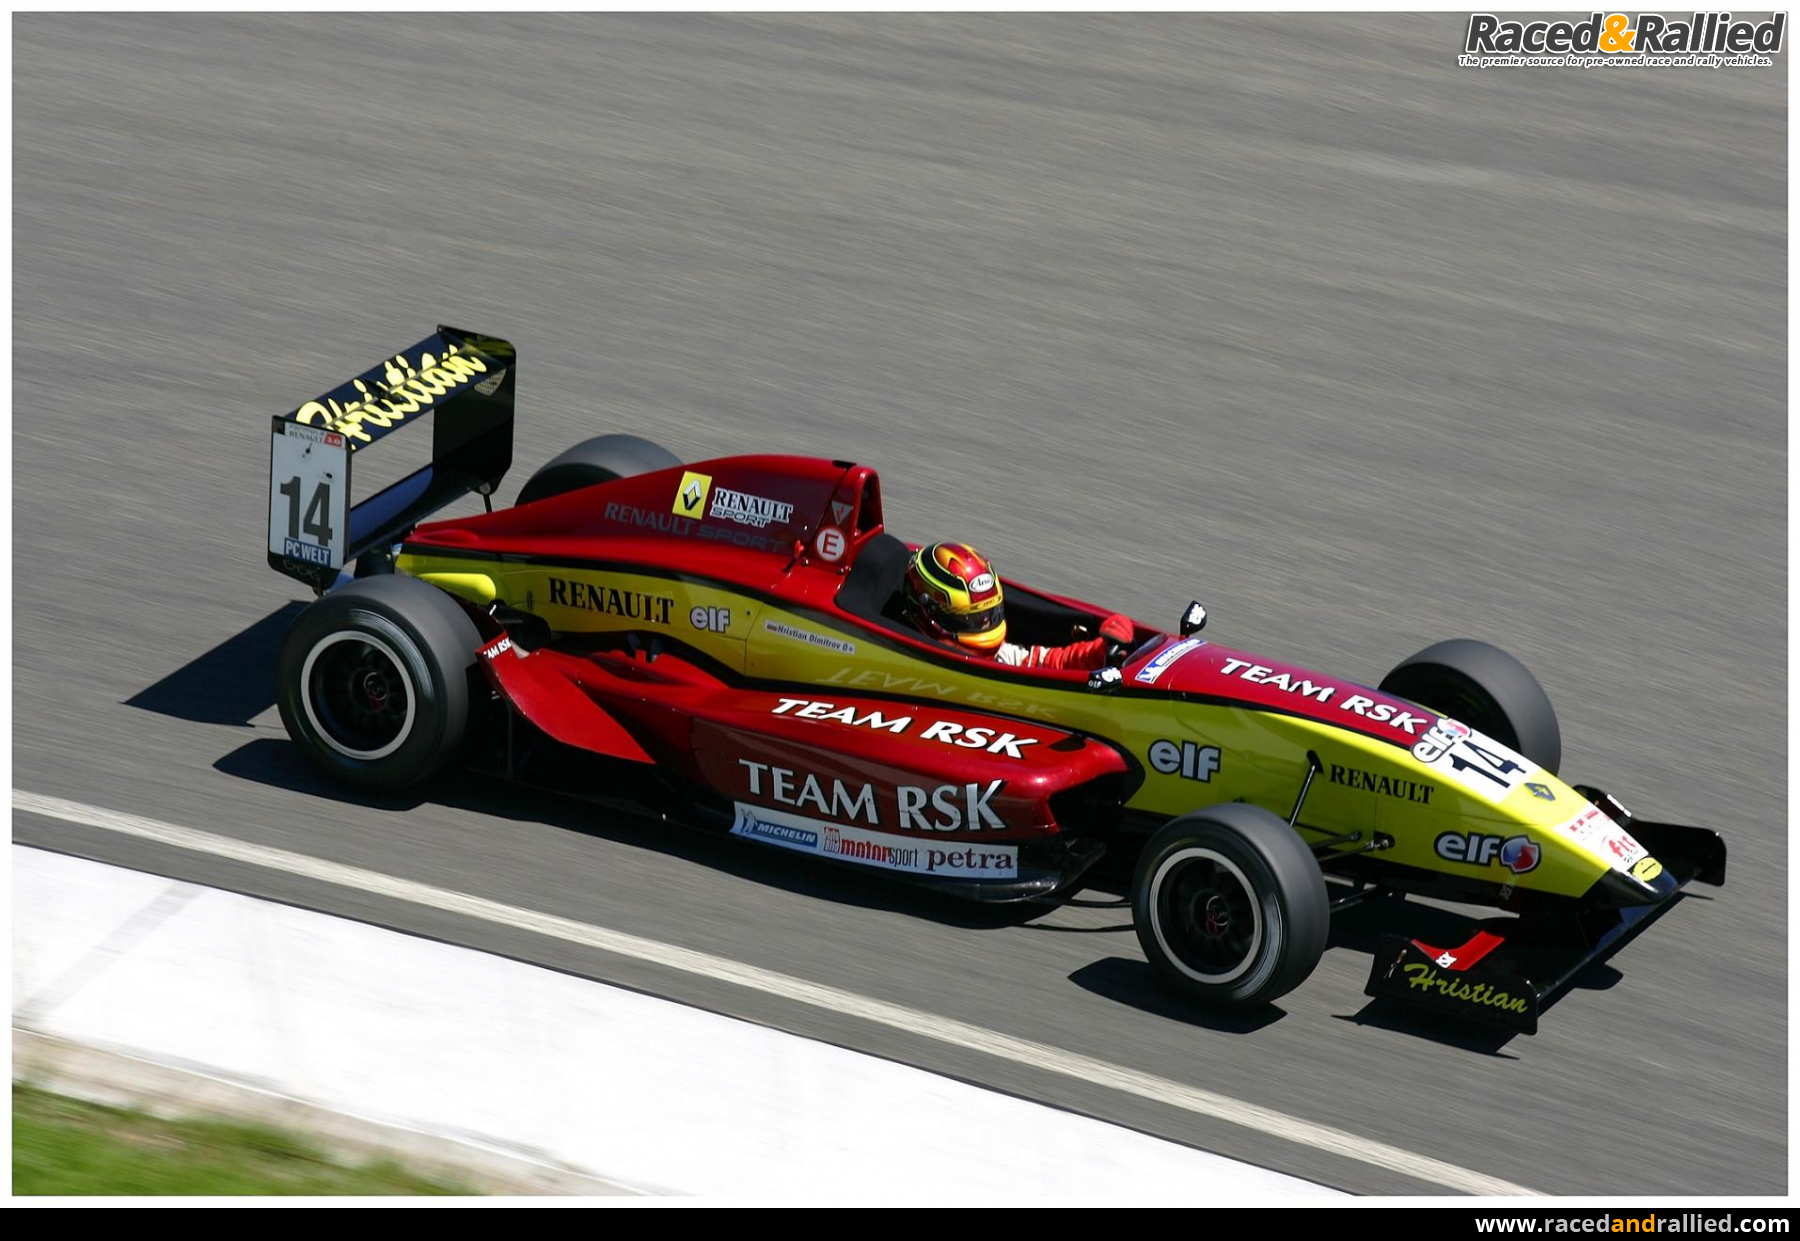 Formula Renault 2 0 For Sale Race Cars For Sale At Raced